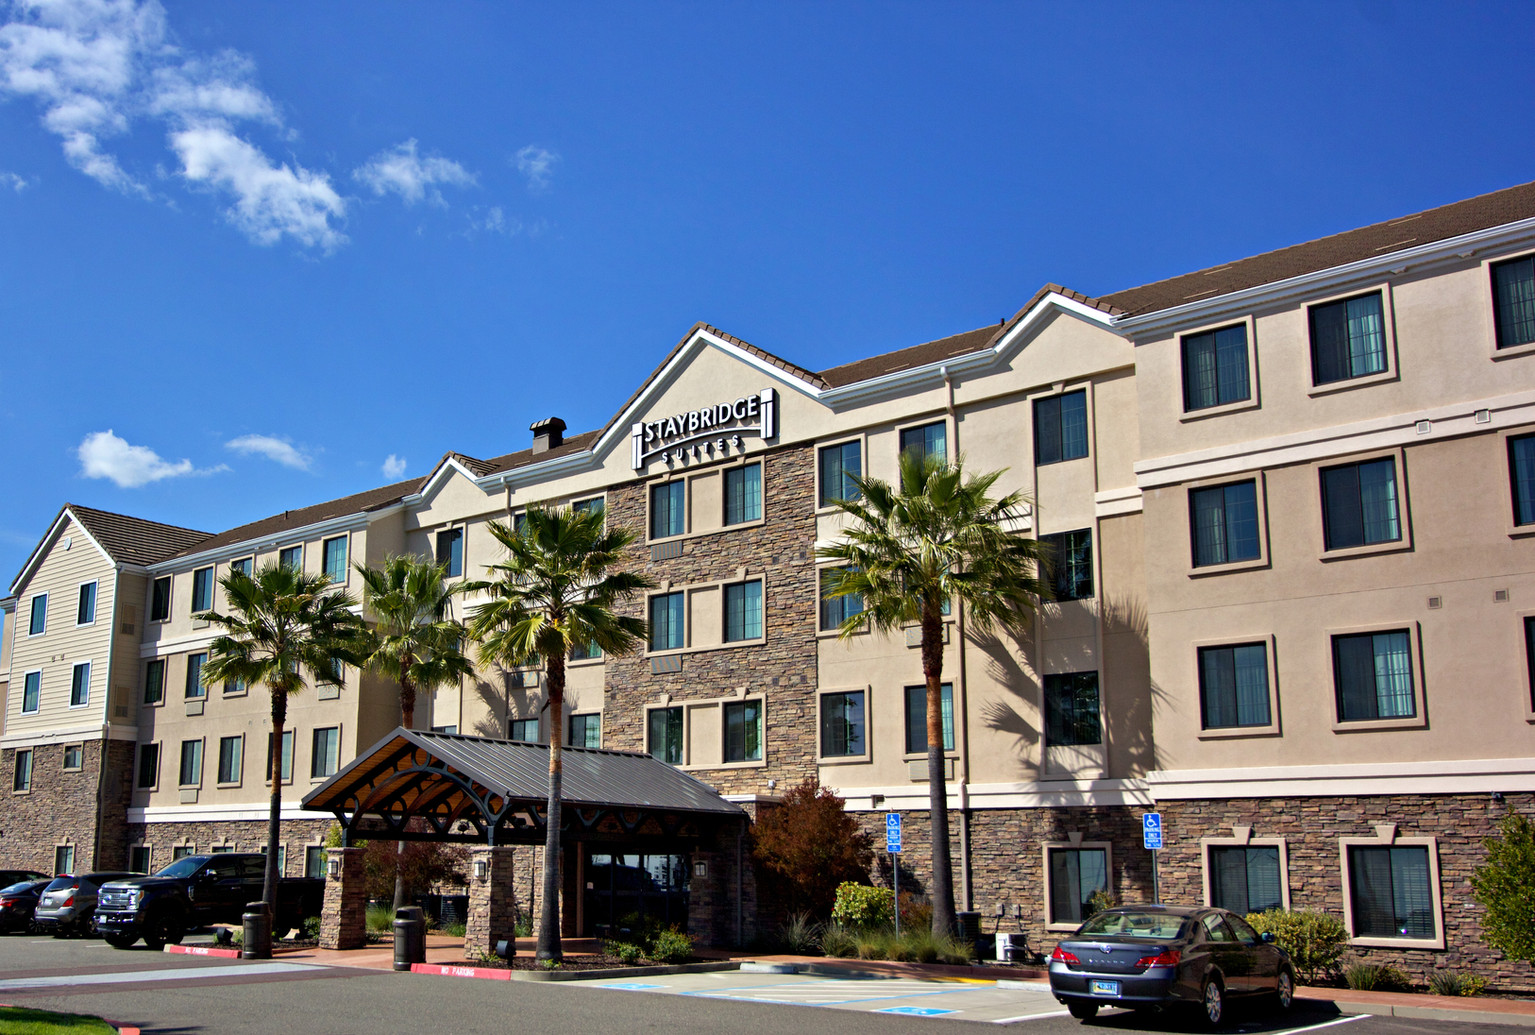 staybridge suites-folsom_2.jpg